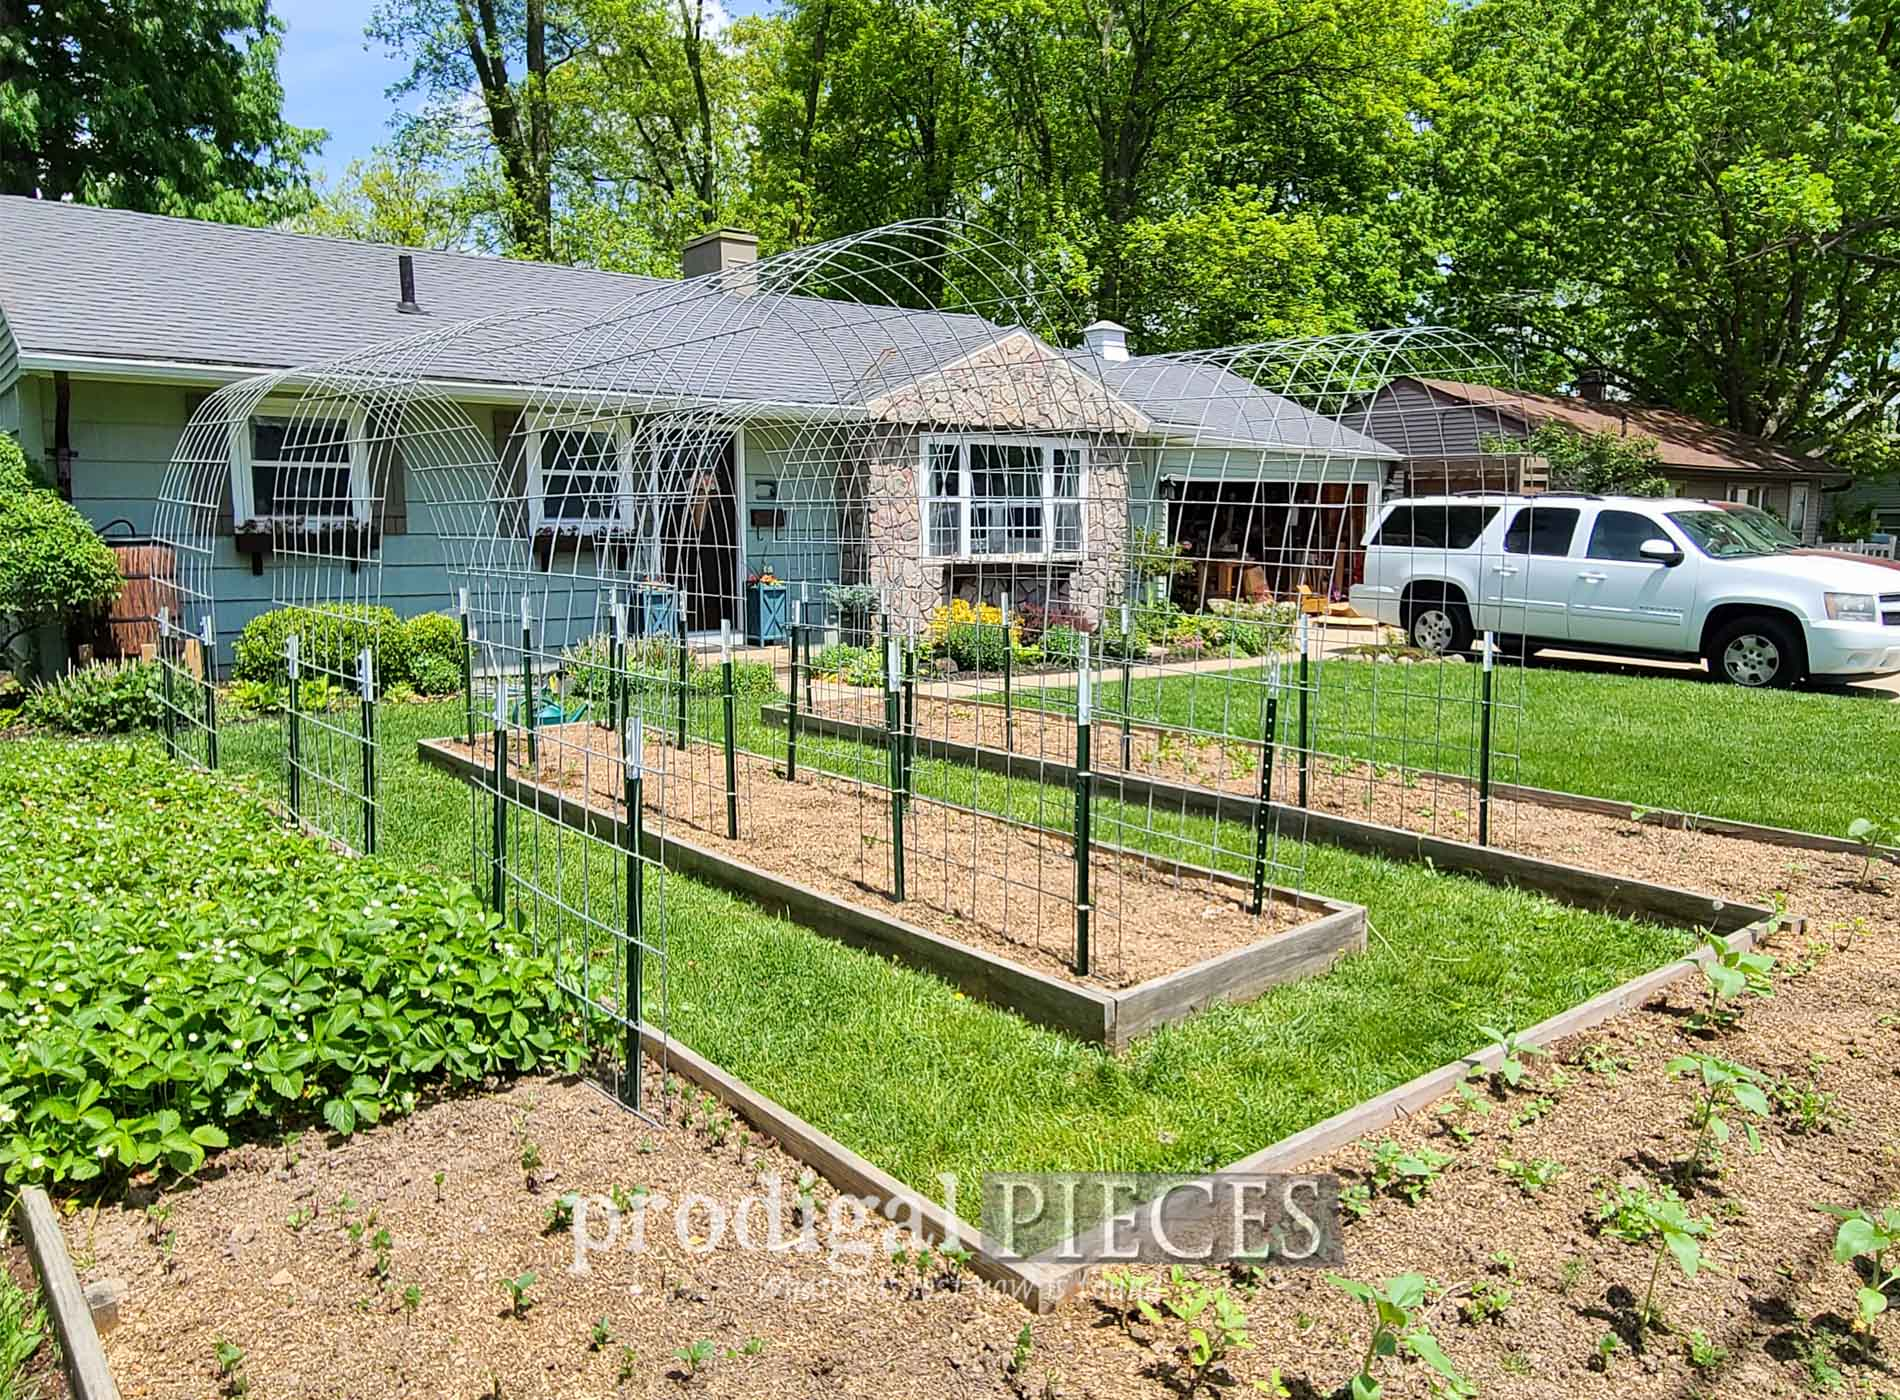 Featured DIY Arched Garden Trellis by Prodigal Pieces | prodigalpieces.com #prodigalpieces #garden #diy #home